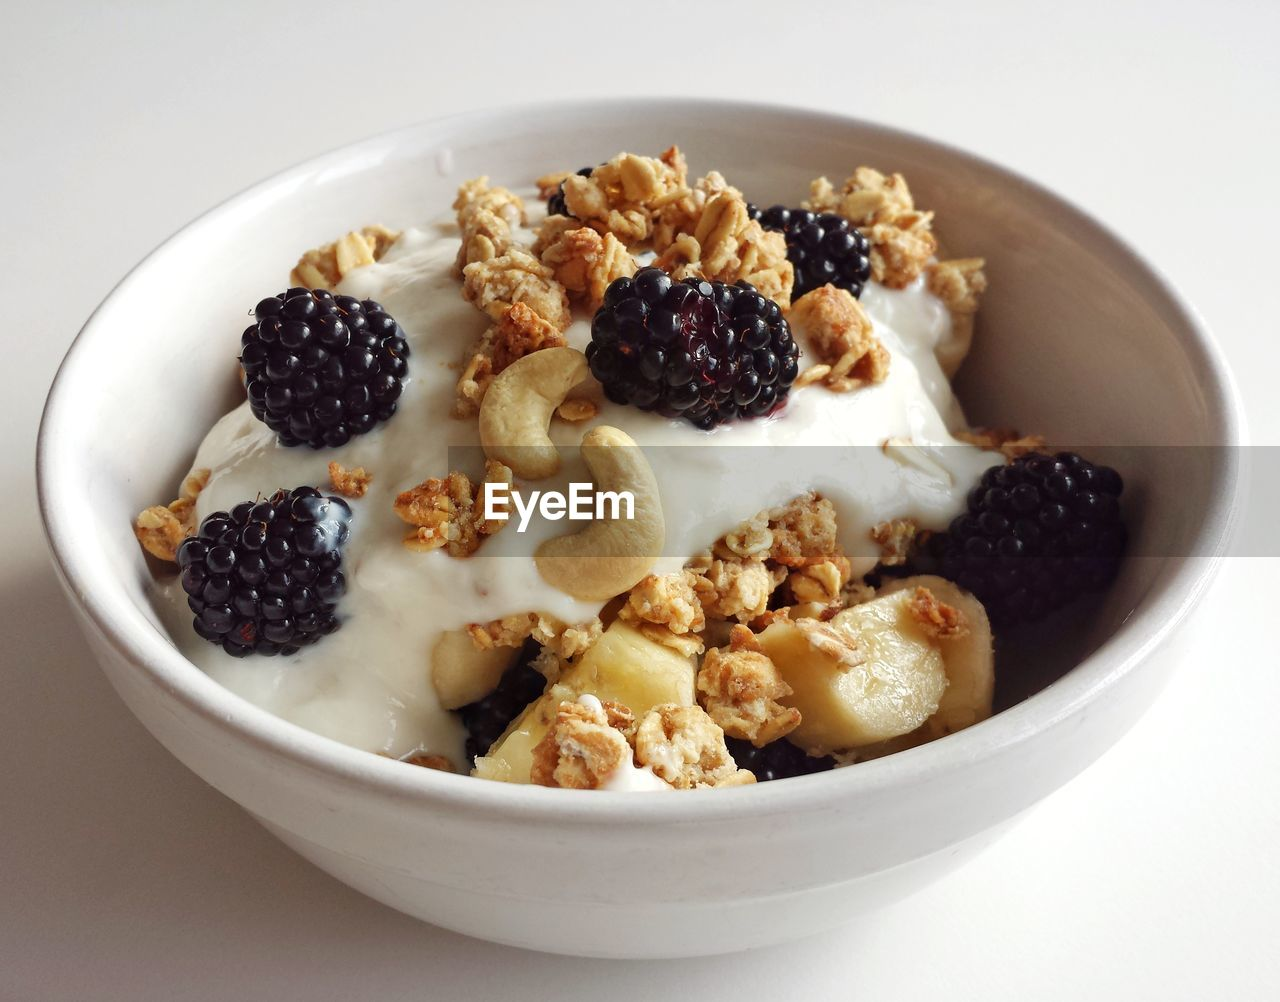 food and drink, food, healthy eating, fruit, freshness, bowl, wellbeing, berry fruit, ready-to-eat, meal, still life, breakfast, breakfast cereal, dairy product, blueberry, white background, indulgence, studio shot, yogurt, close-up, no people, temptation, oatmeal